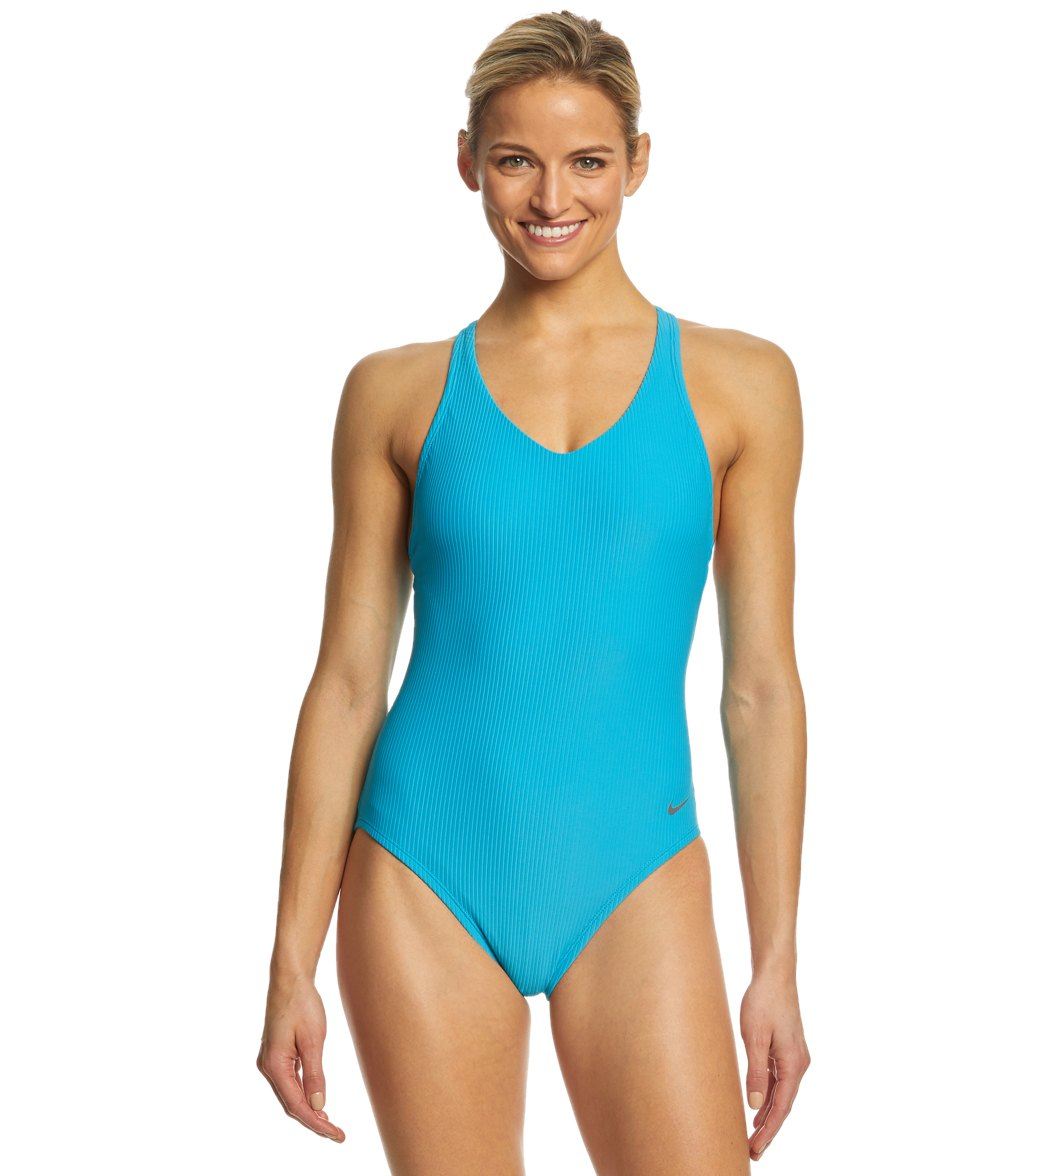 f1050f46ddd9a Nike Women s Ribbed Racerback One Piece Swimsuit at SwimOutlet.com - Free  Shipping